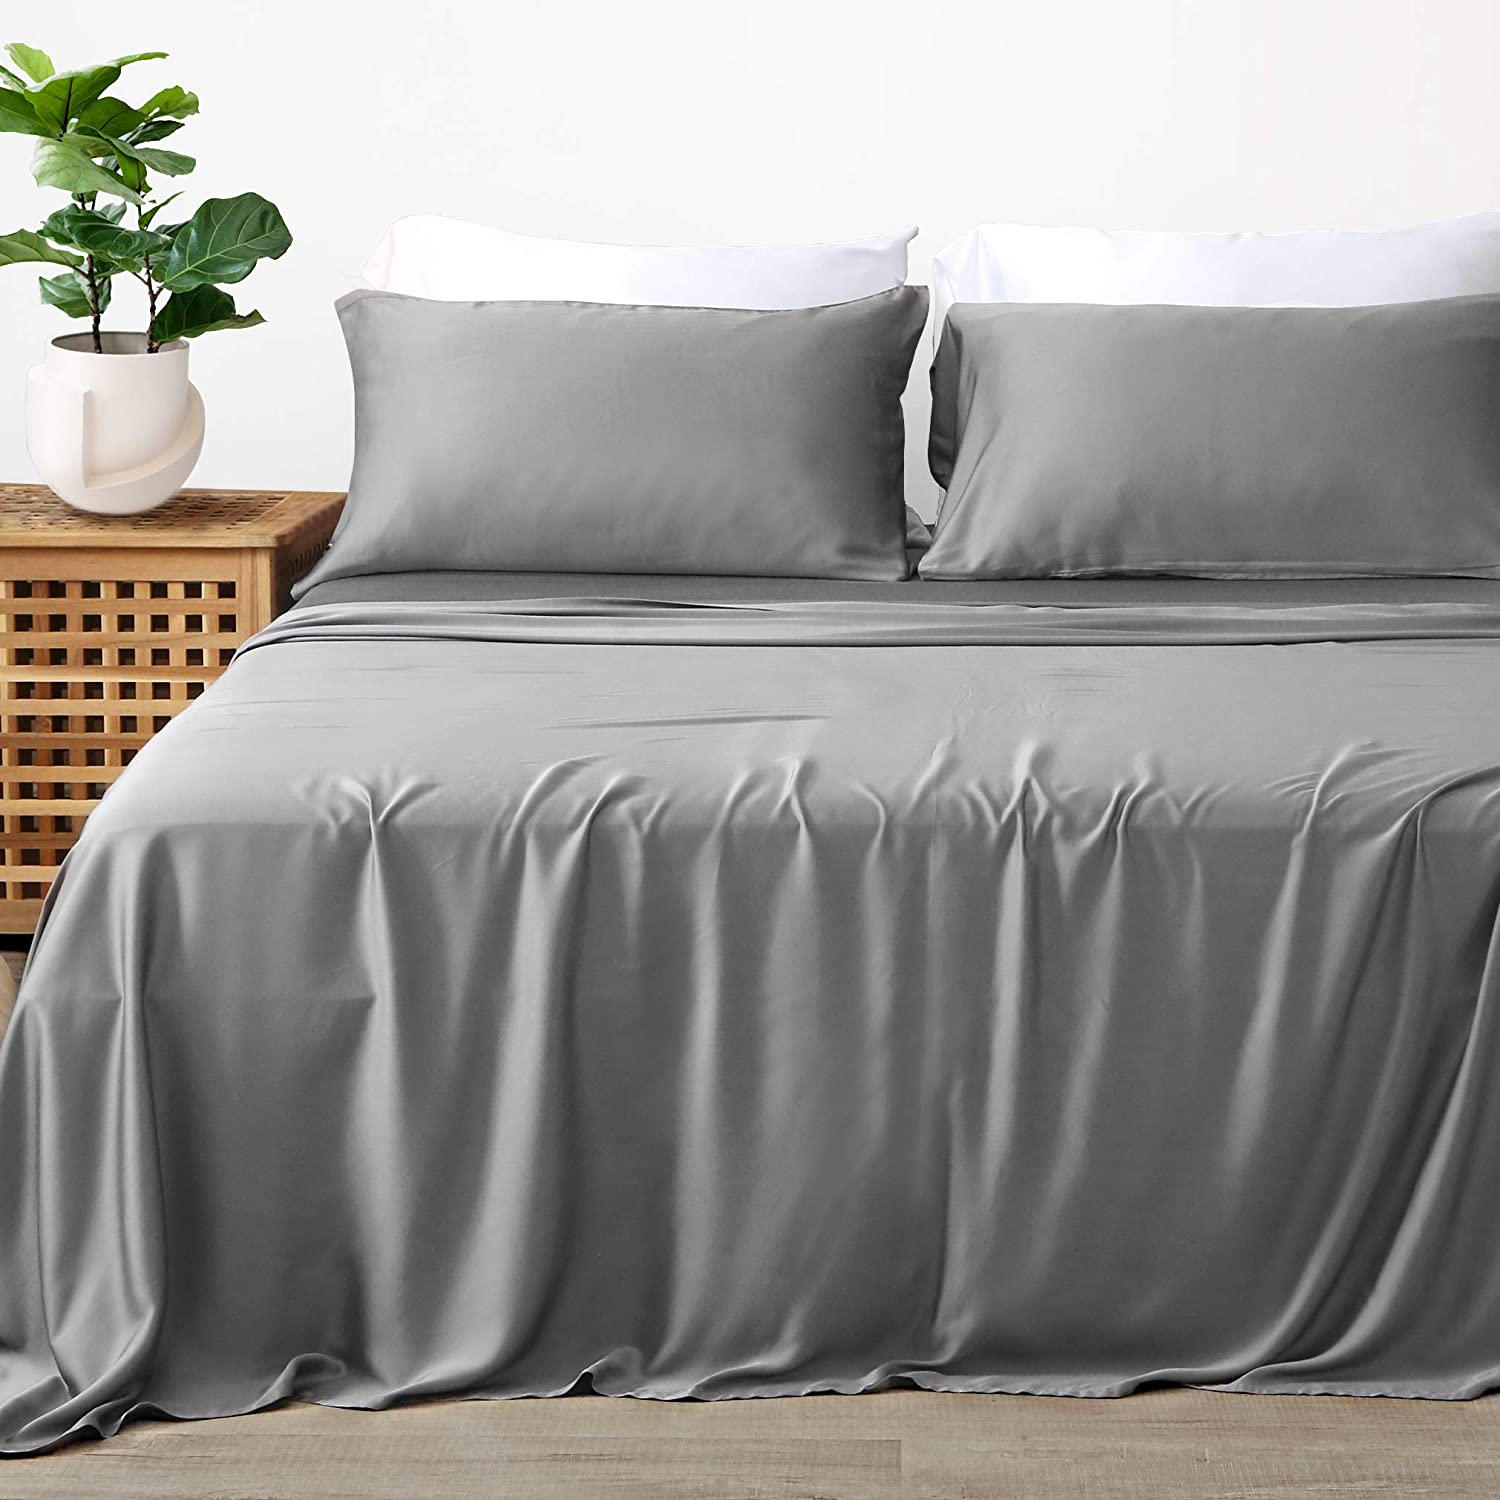 Dr.BeTree Bamboo Sheets Queen Size Bed Sheets 4 Piece Set, 100% Bamboo Sheet-Satin Weave, Luxuriously Soft & Cooling, Double Stitching, 17